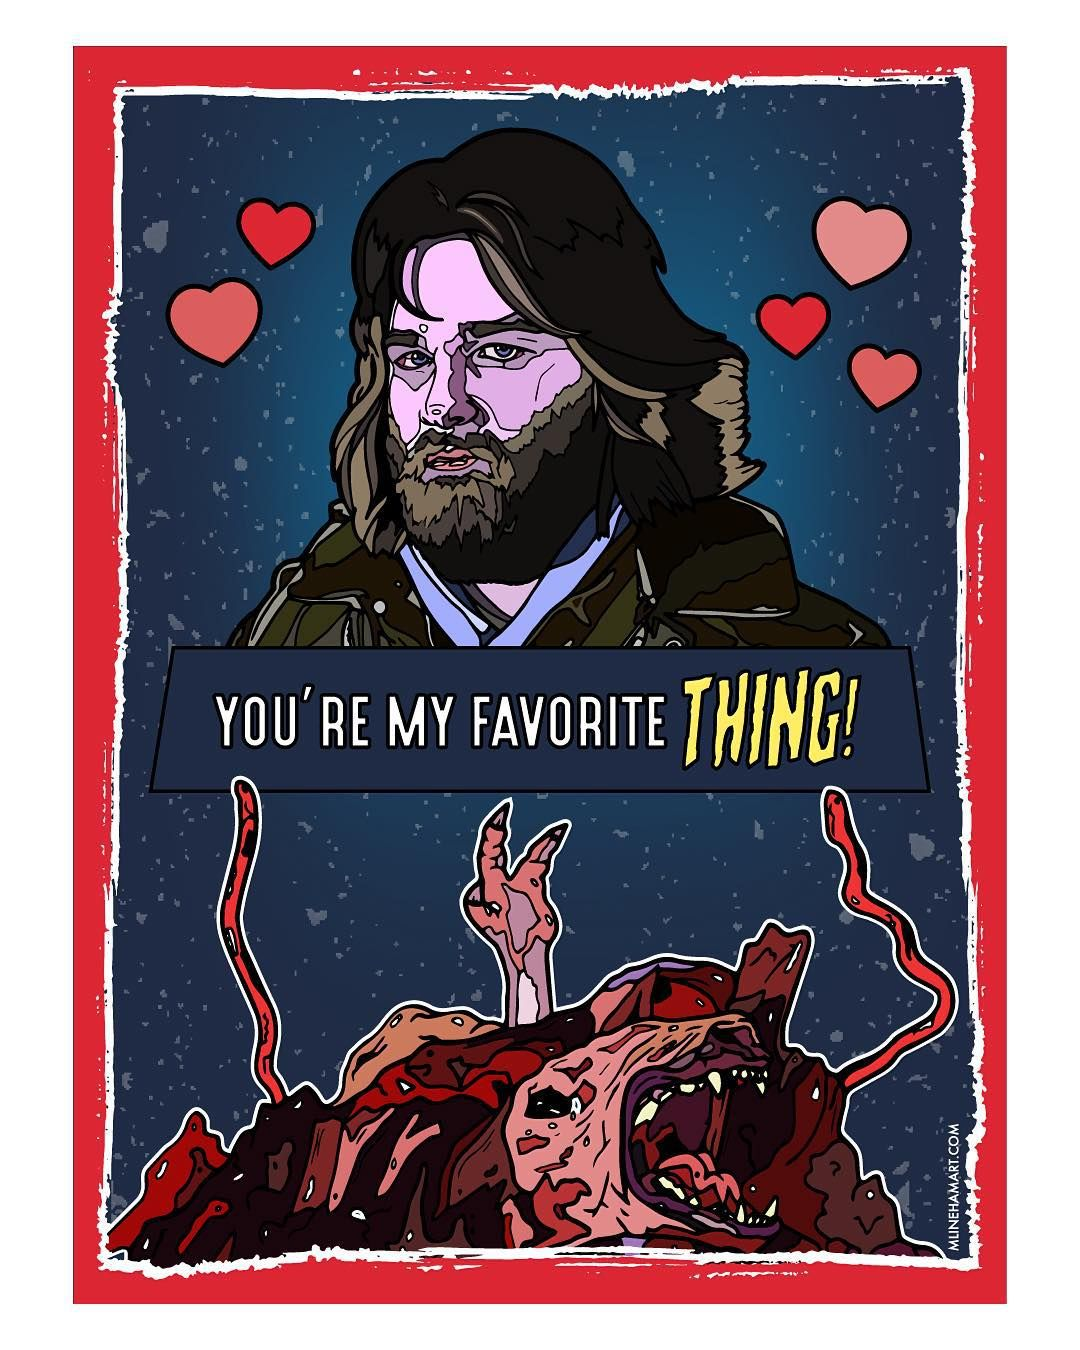 Spread Your Love With These Creative Horror Movie Valentines